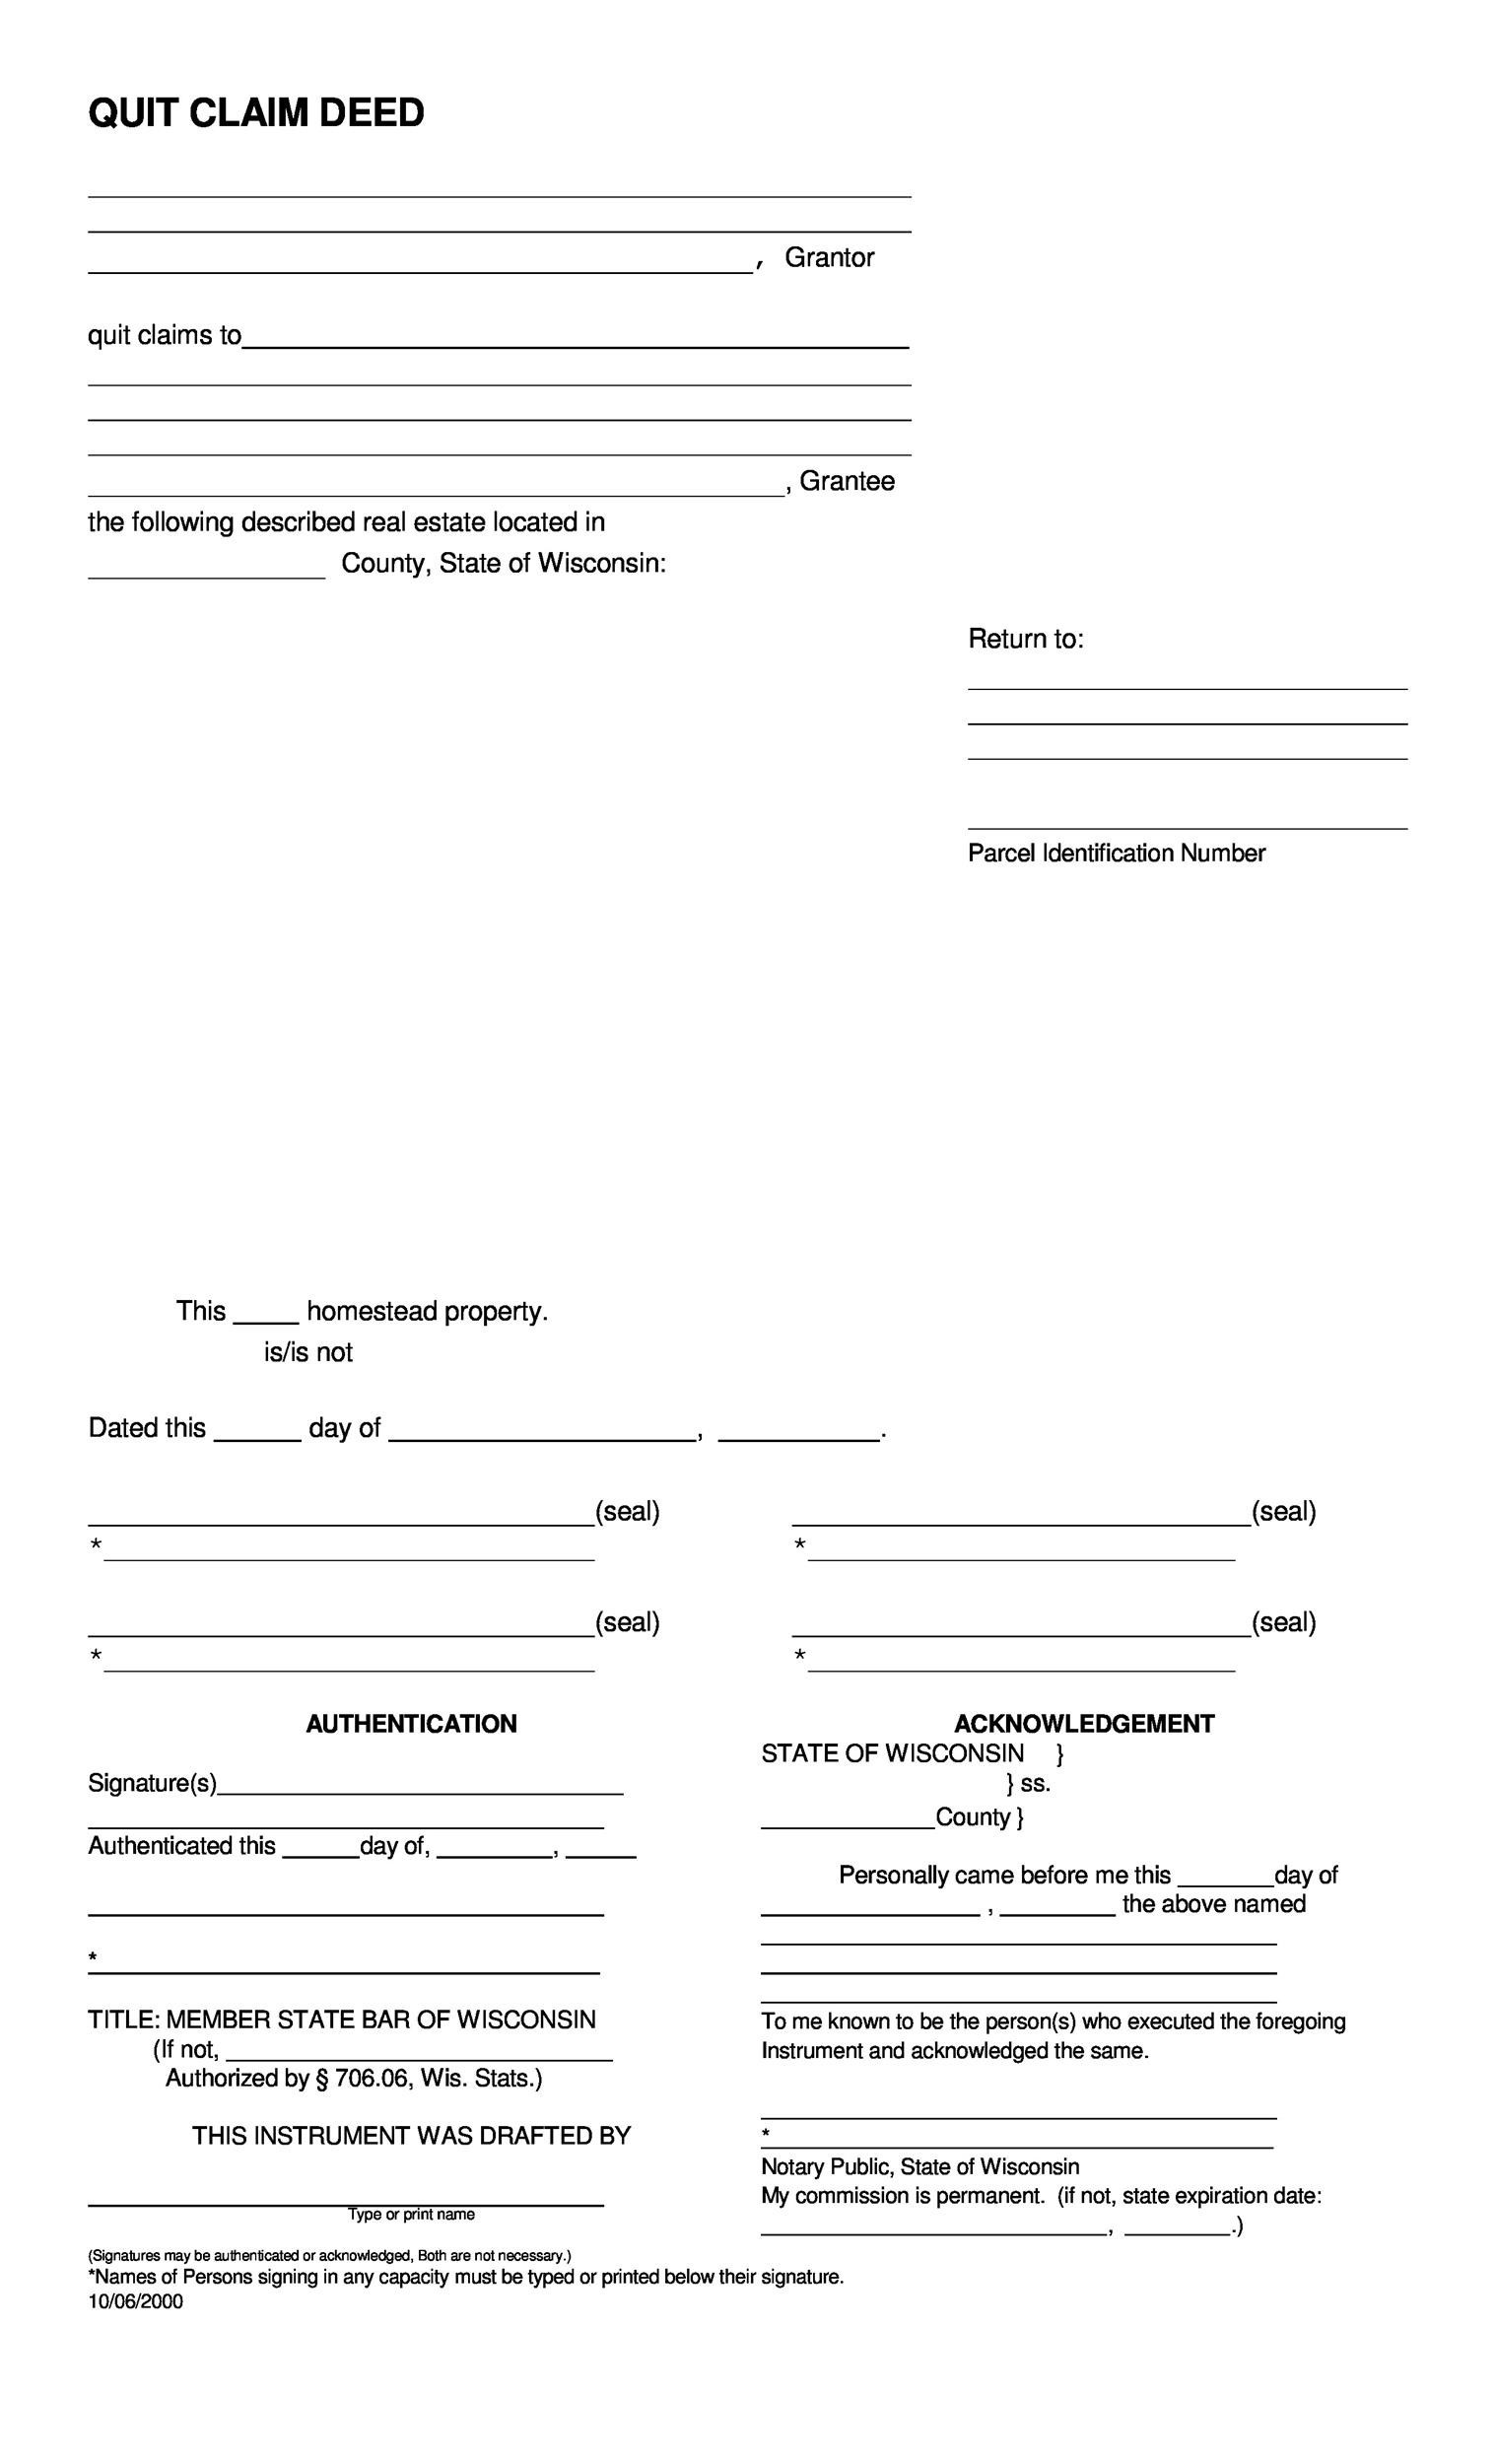 quit claim deed template 39